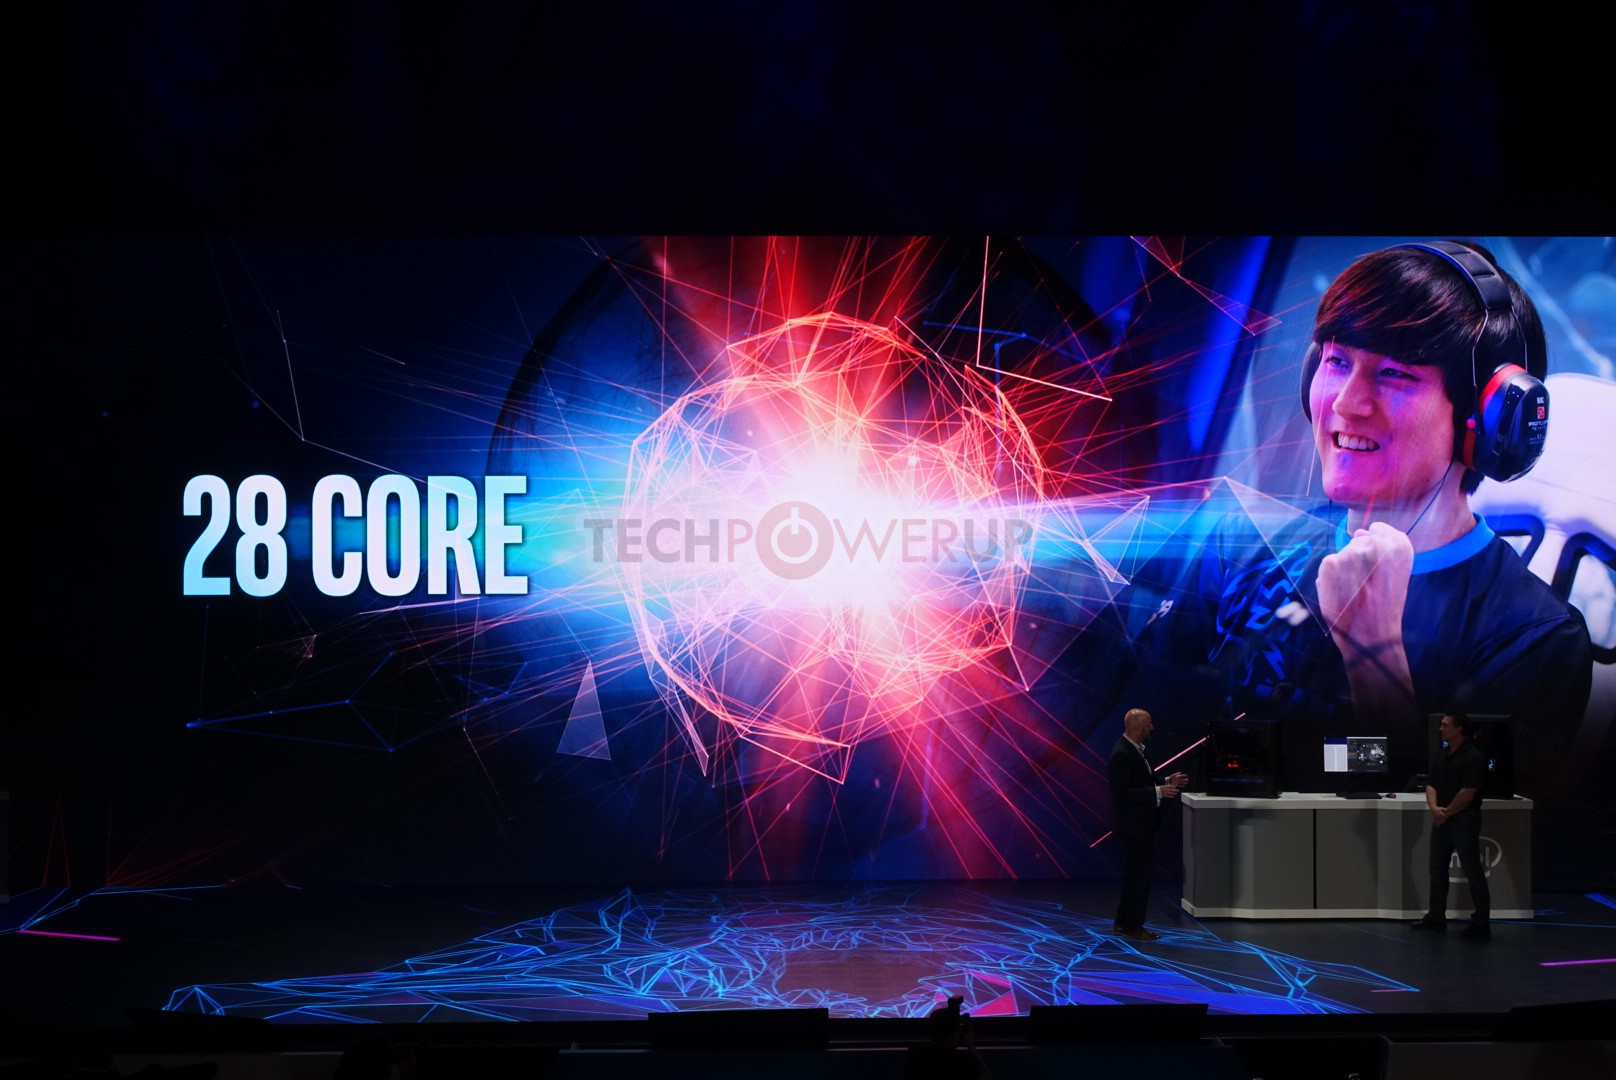 The new CPU from Intel with 28-Core 5 GHz will available to ship at end of the year 1